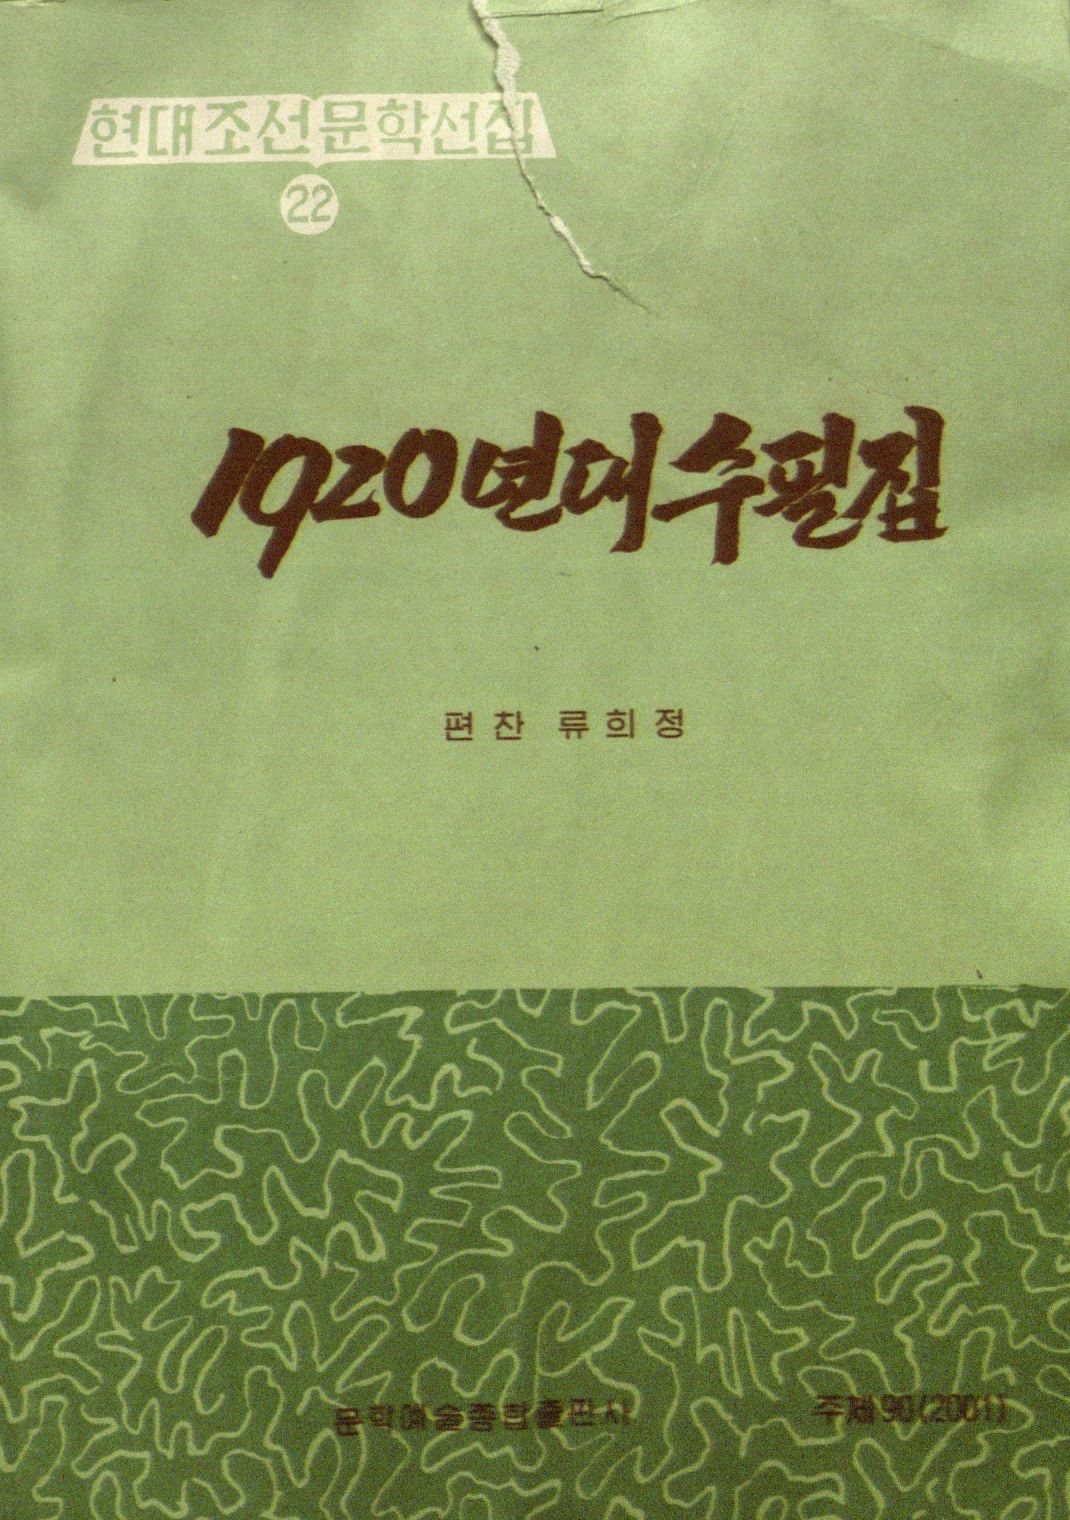 title page of 1920년대 수필집